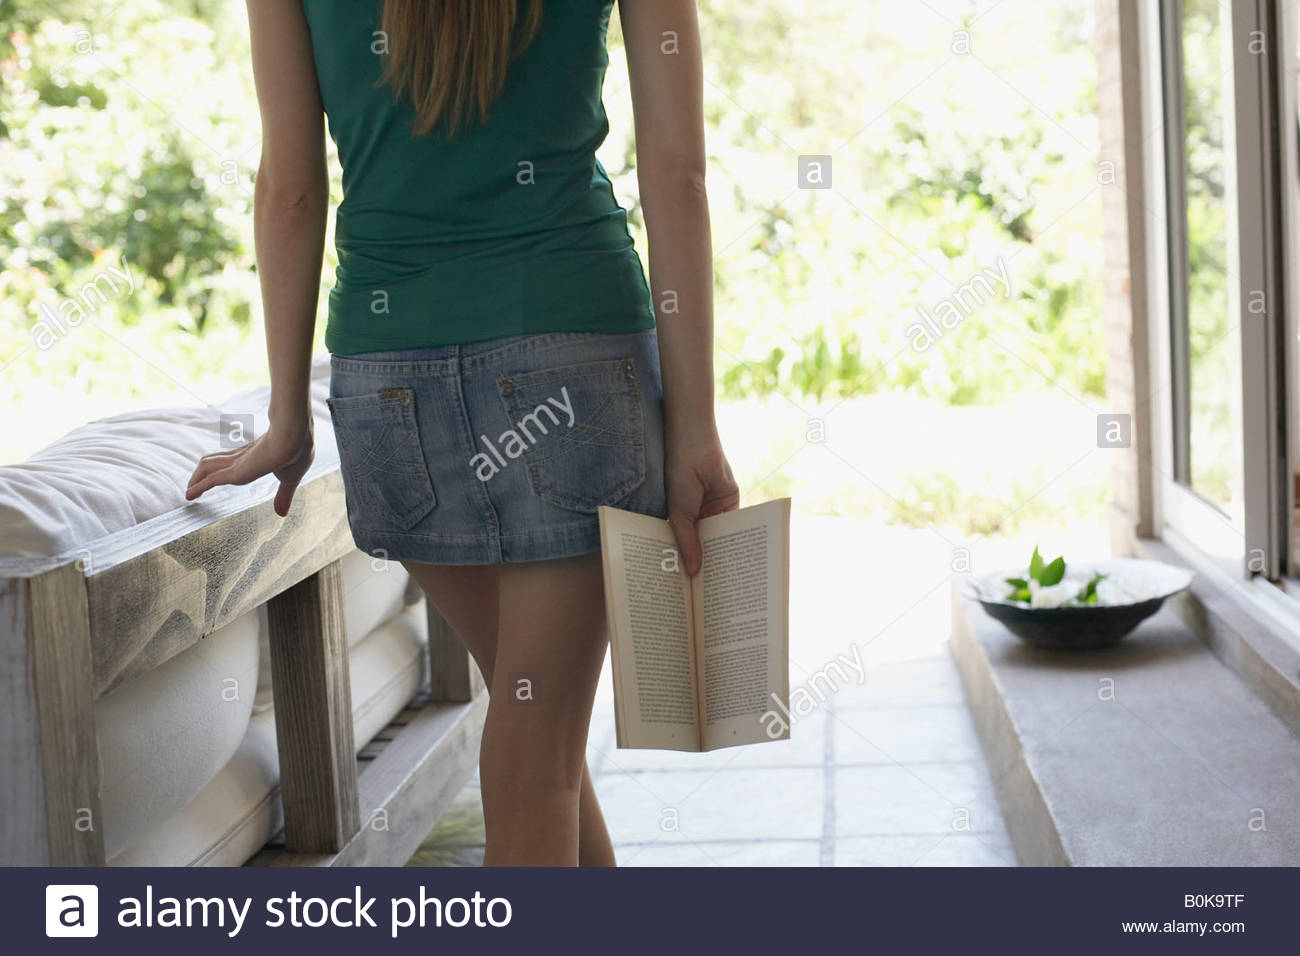 Woman standing outdoors on patio with a book - Stock Image